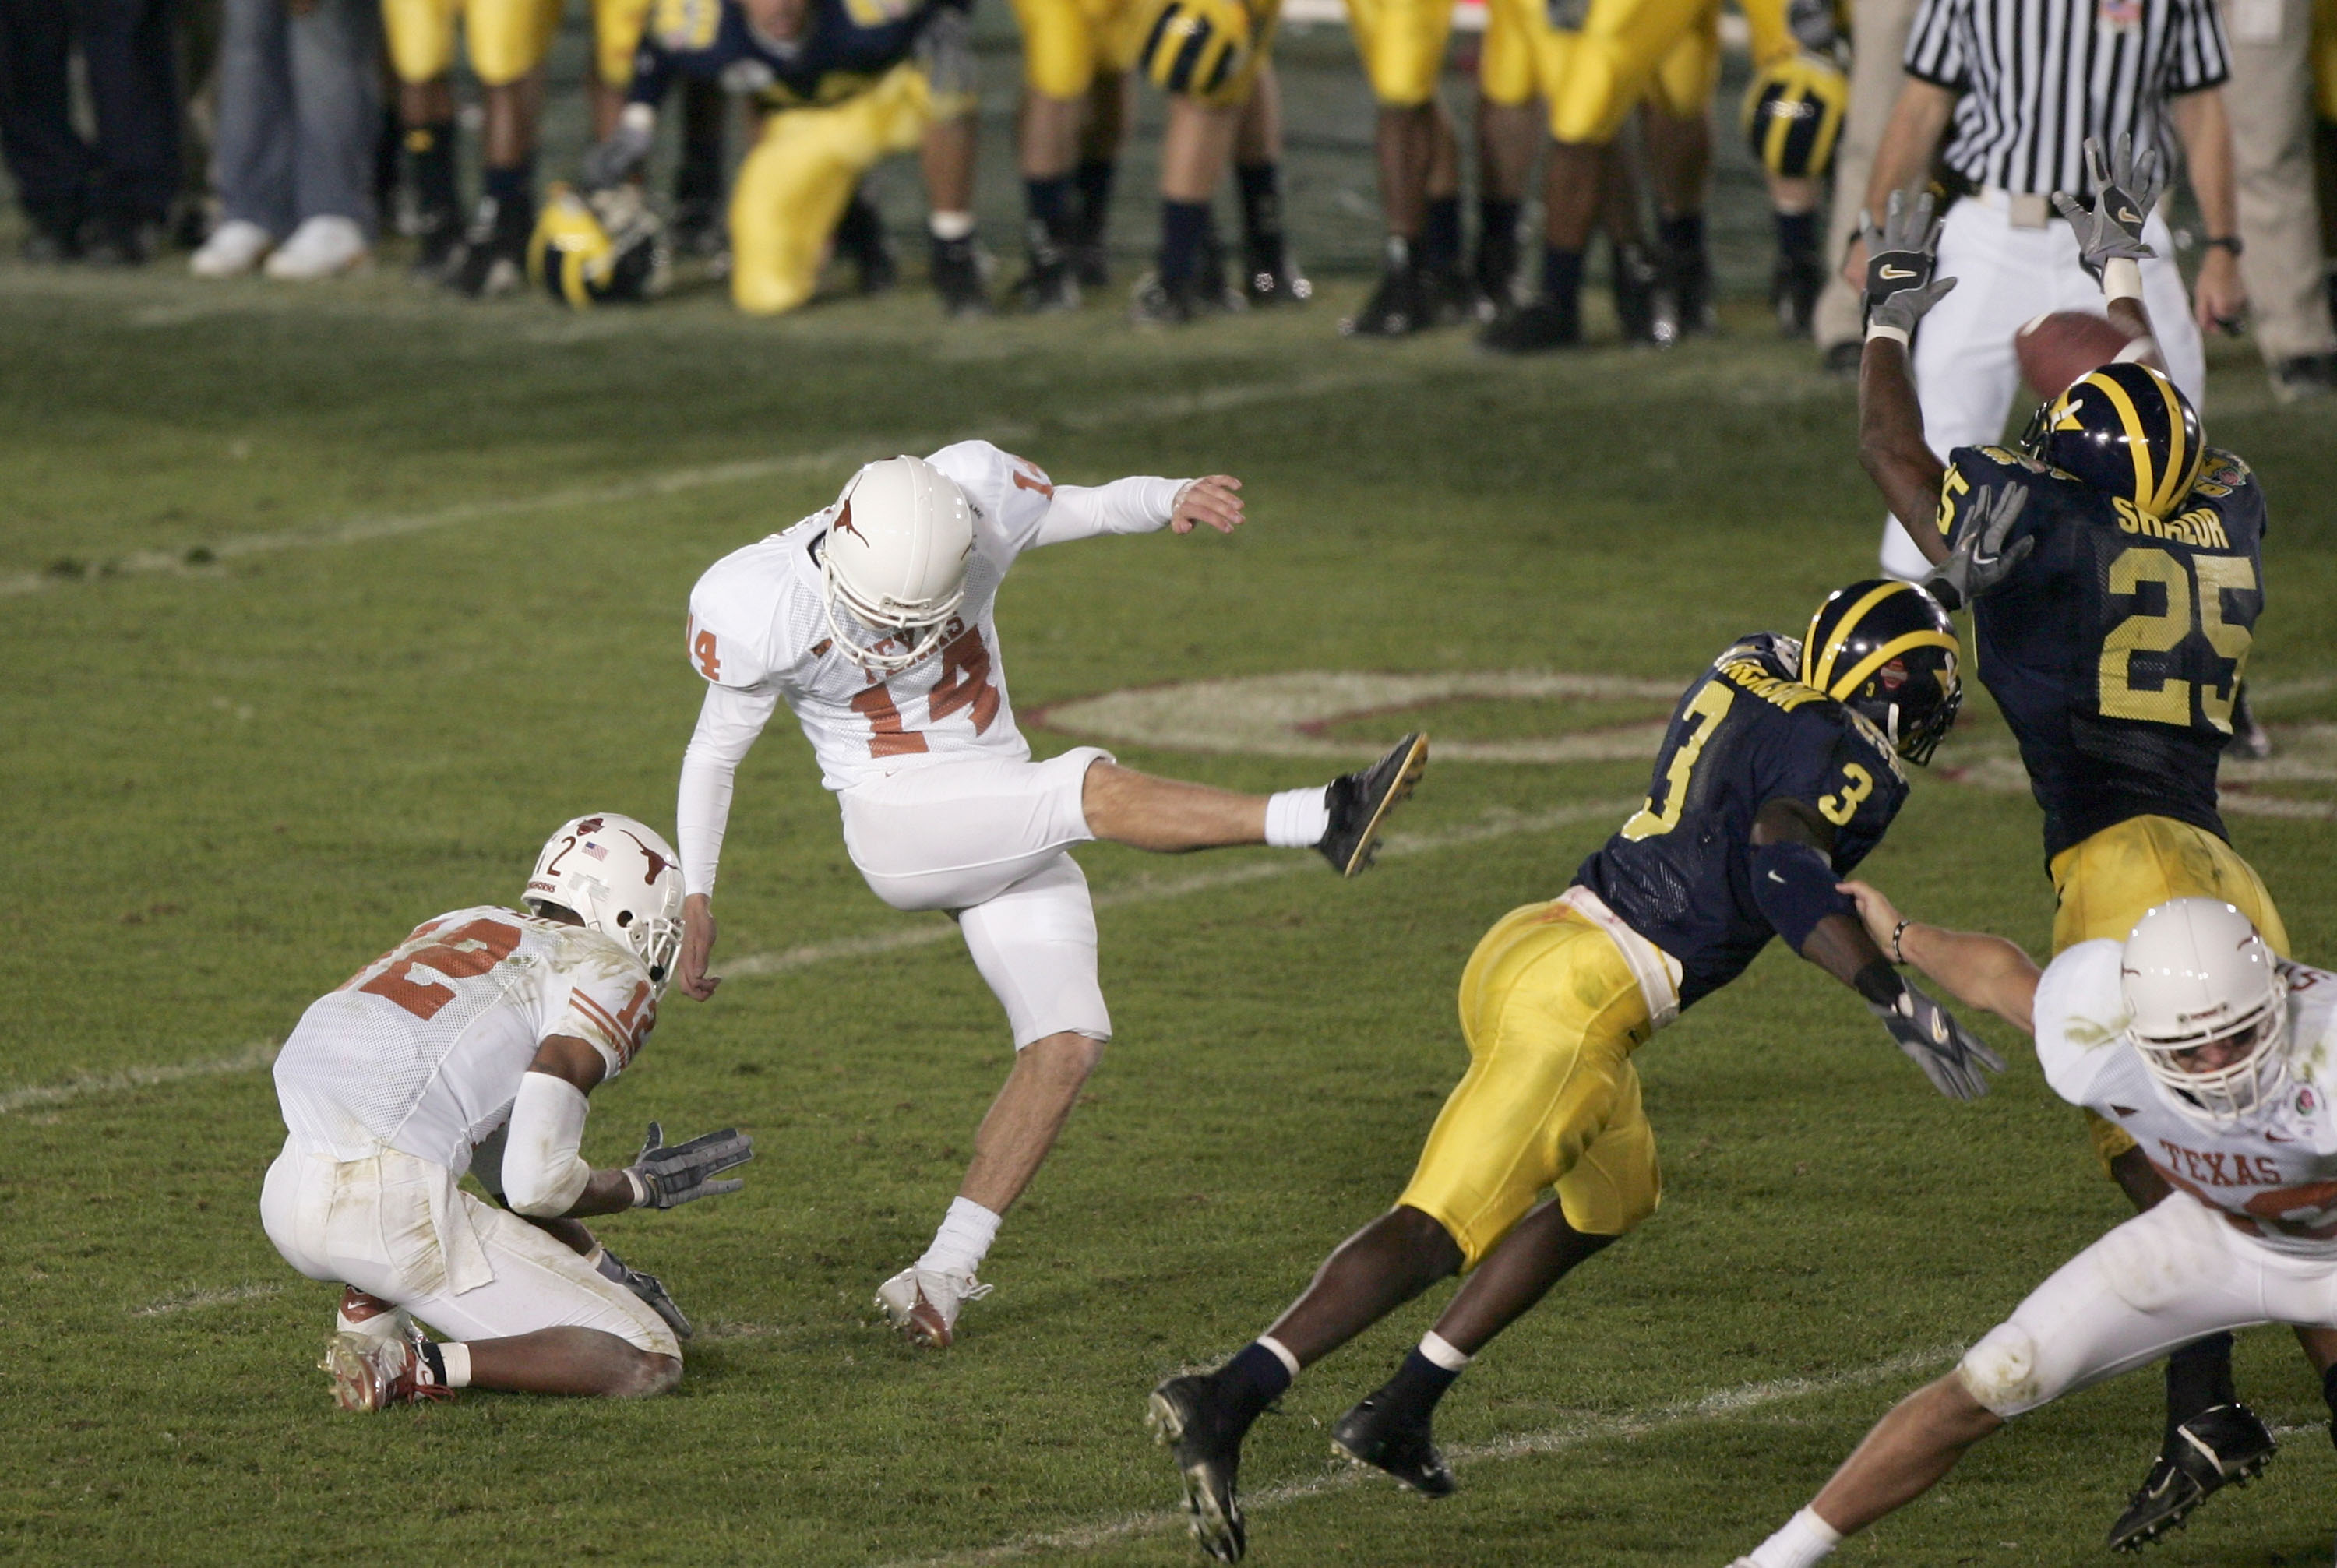 PASADENA, CA - JANUARY 01:  Kicker Dusty Mangum #14 of the Texas Longhorns kicks the game winning field goal against the Michigan Wolverines in the 91st Rose Bowl Game at the Rose Bowl on January 1, 2005 in Pasadena, California.   Texas defeated Michigan